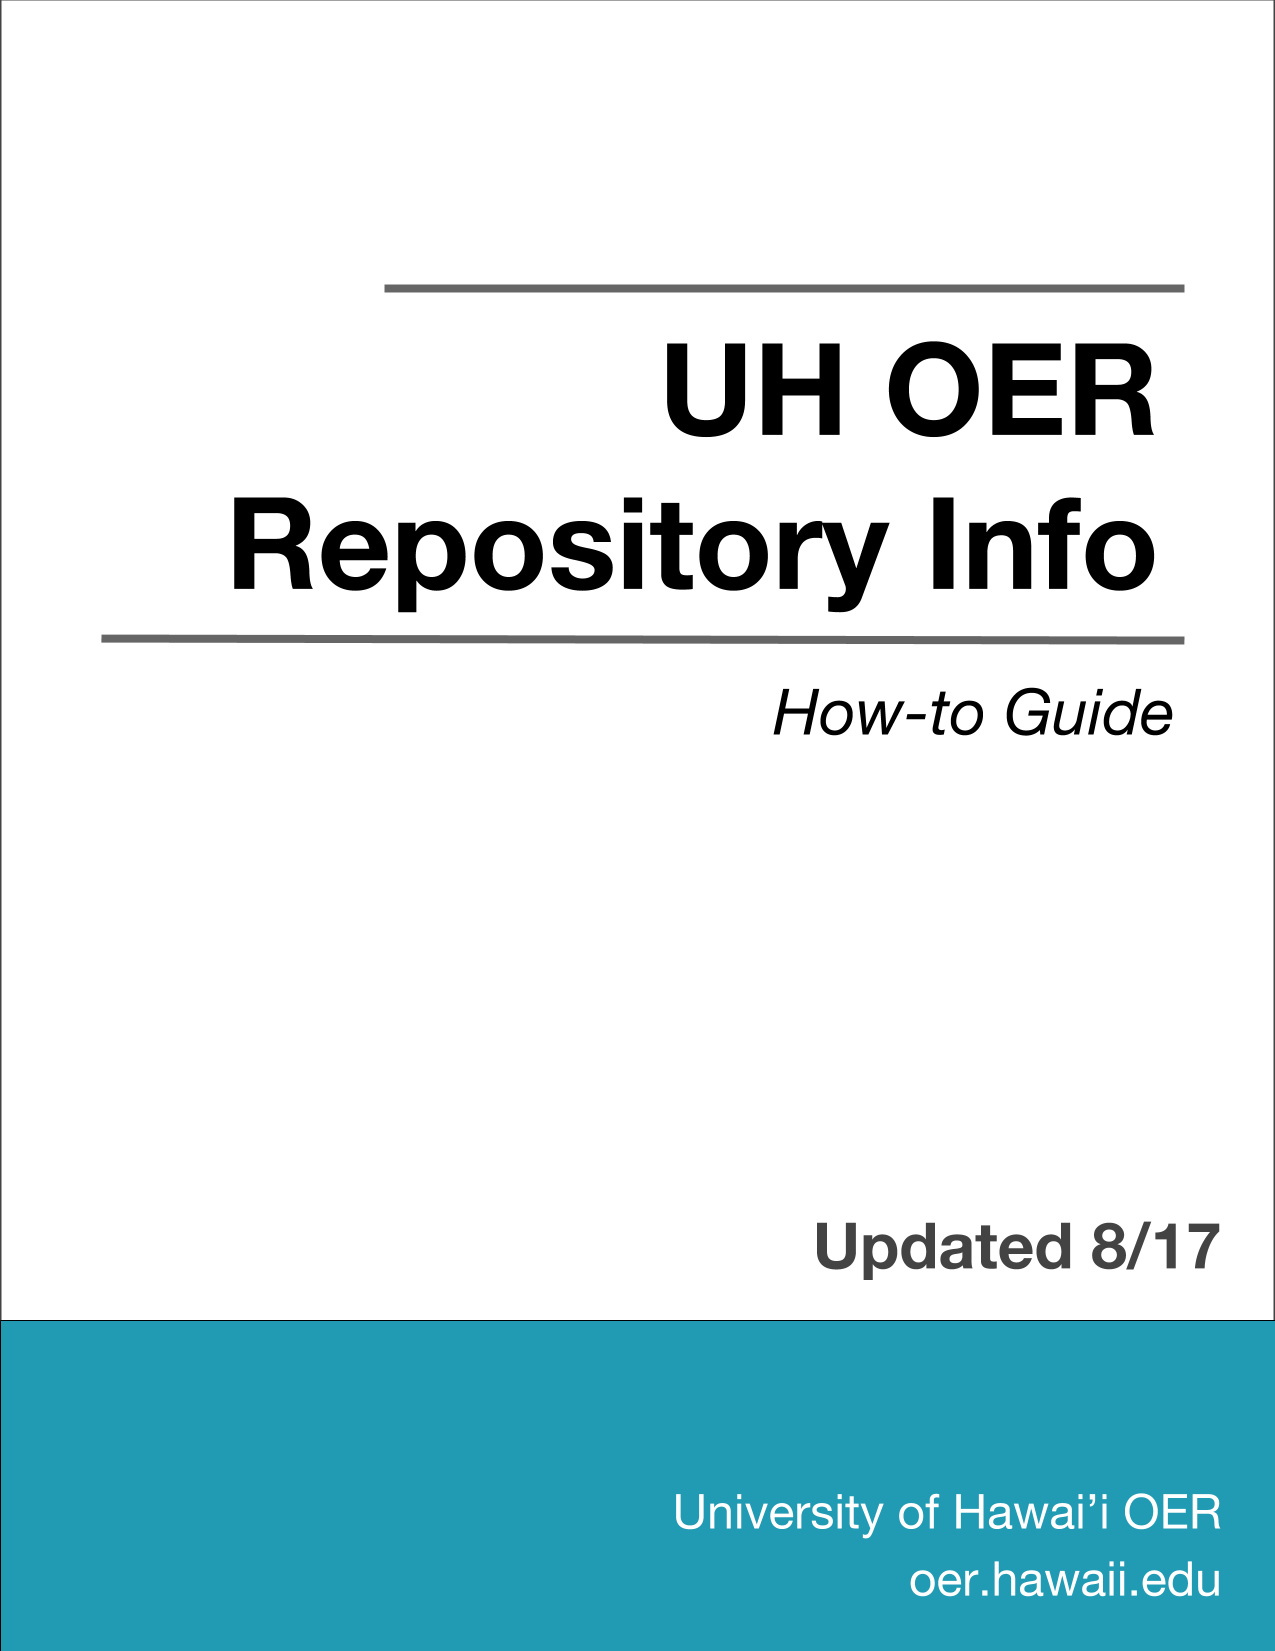 UH OER Repository Info